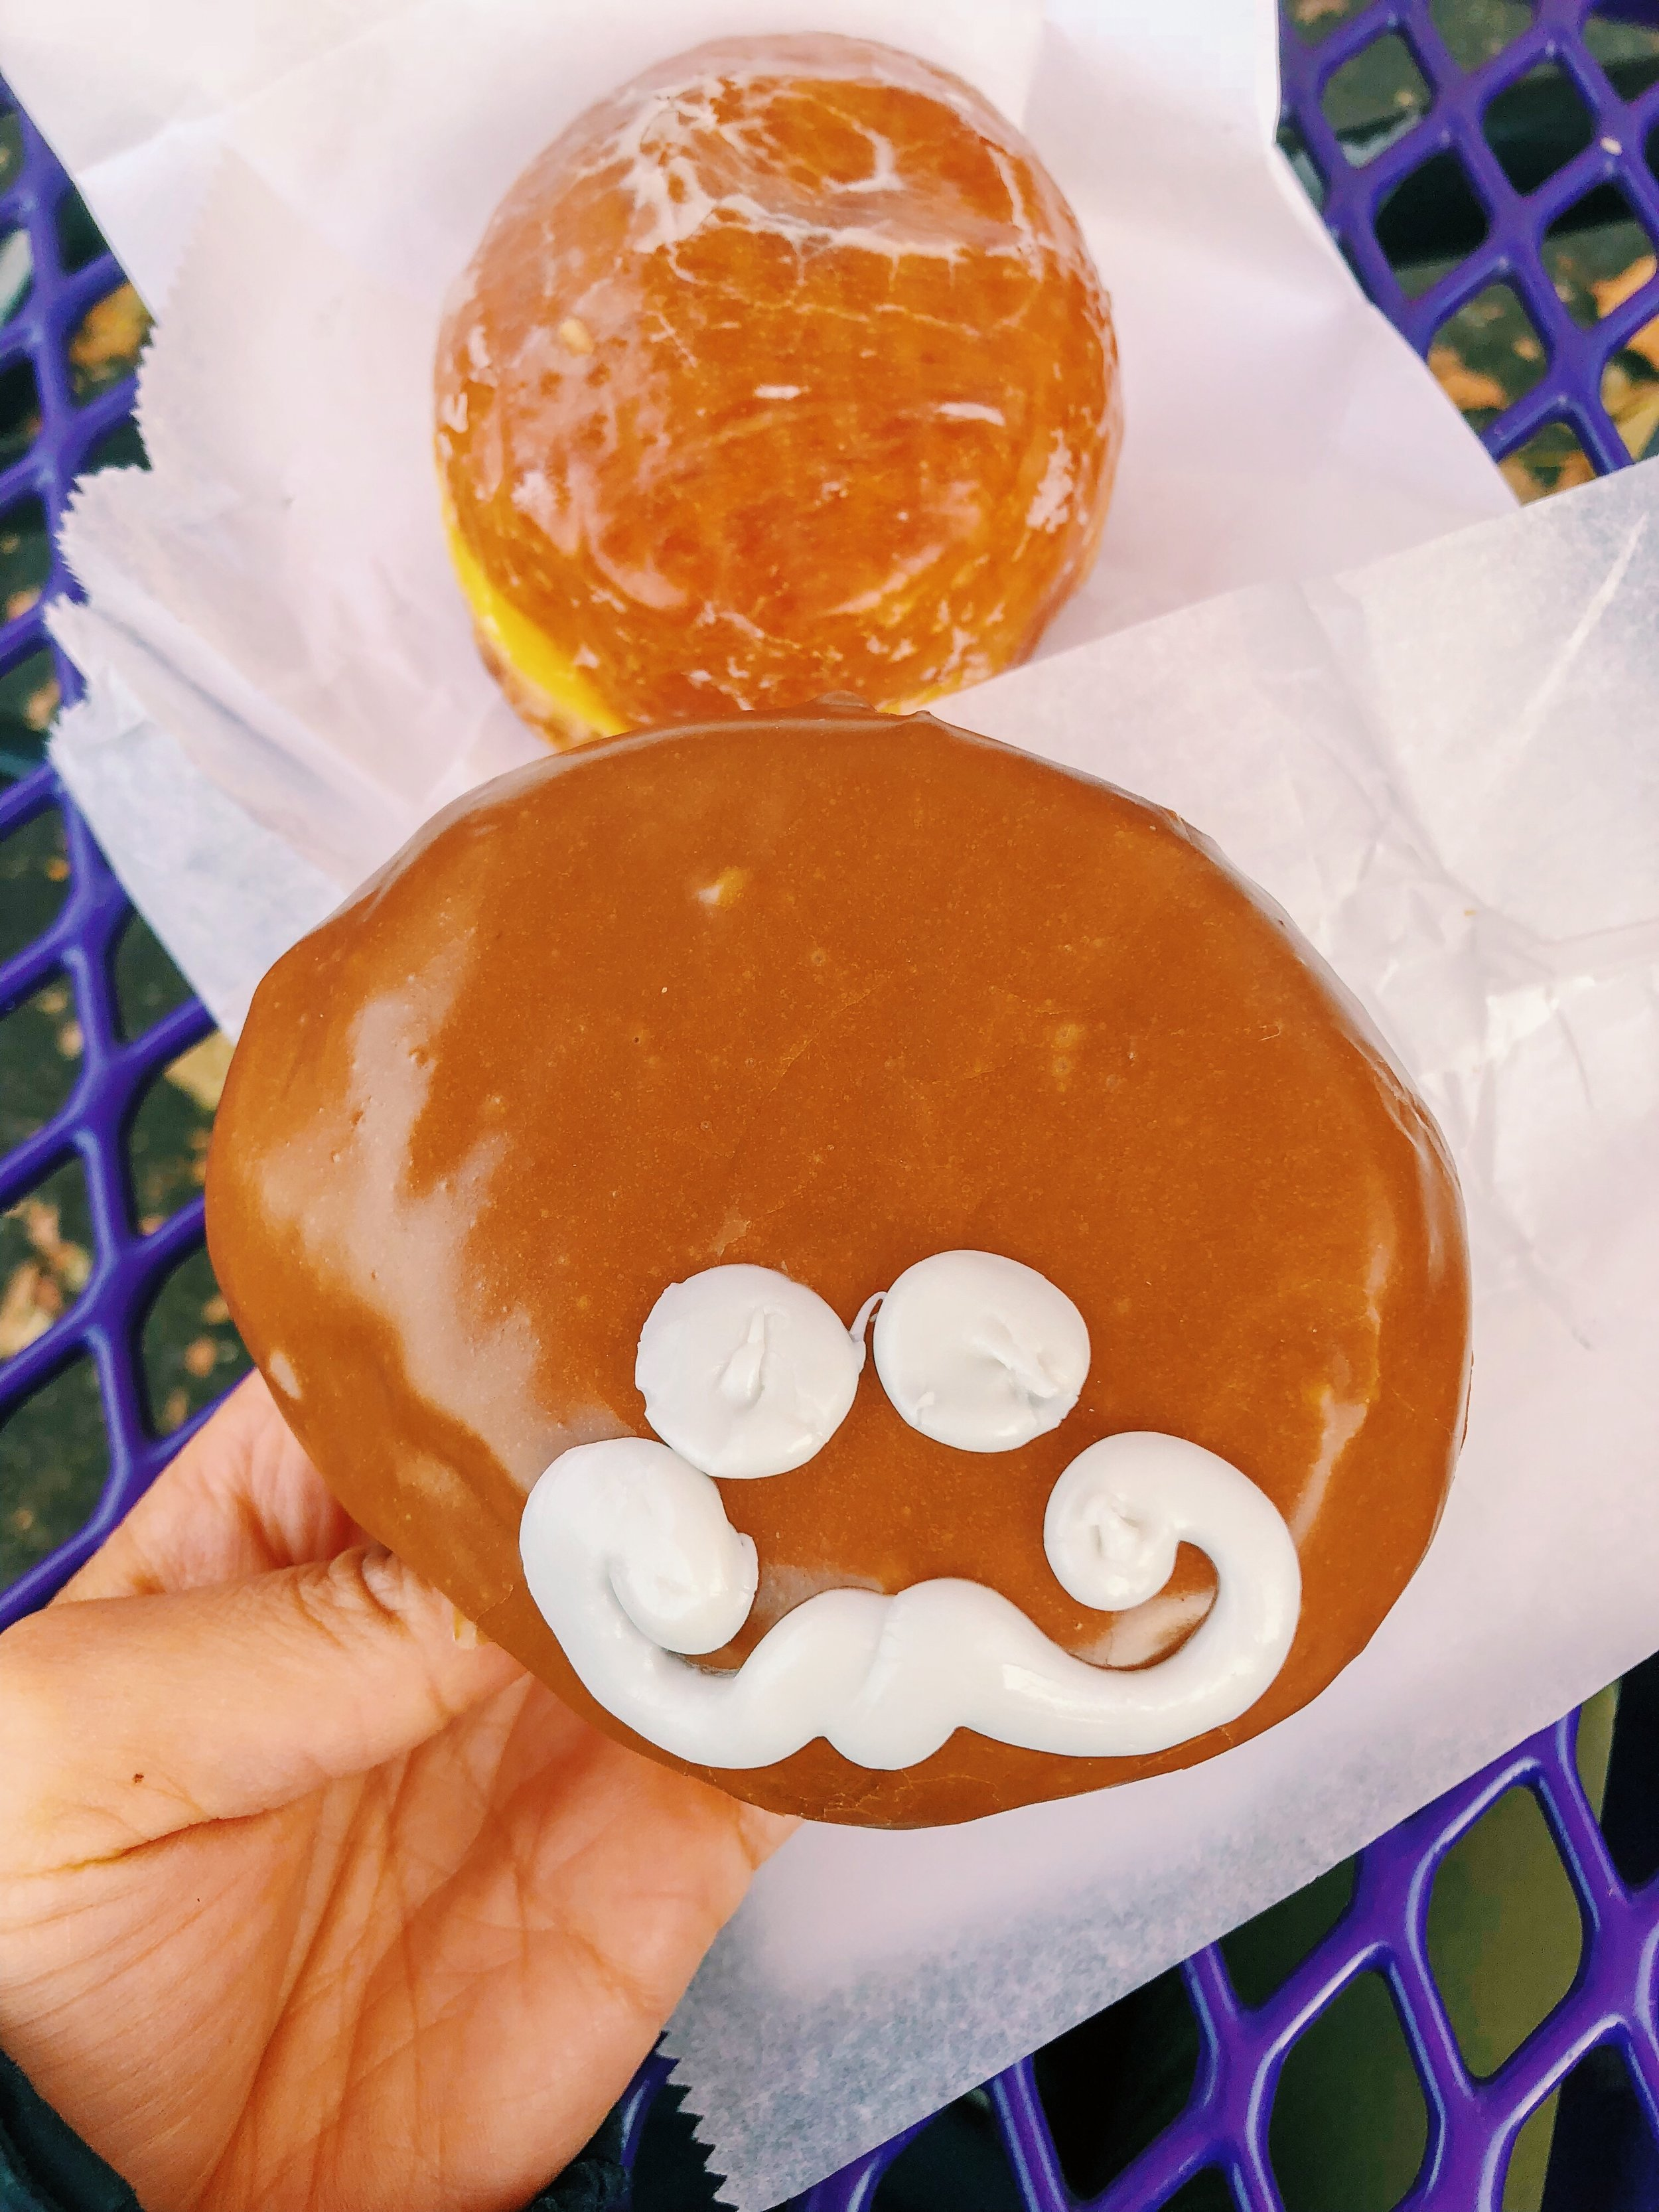 McMinville Cream  from  Voodoo Donuts  - filled with Bavarian Cream and topped with Maple Icing!